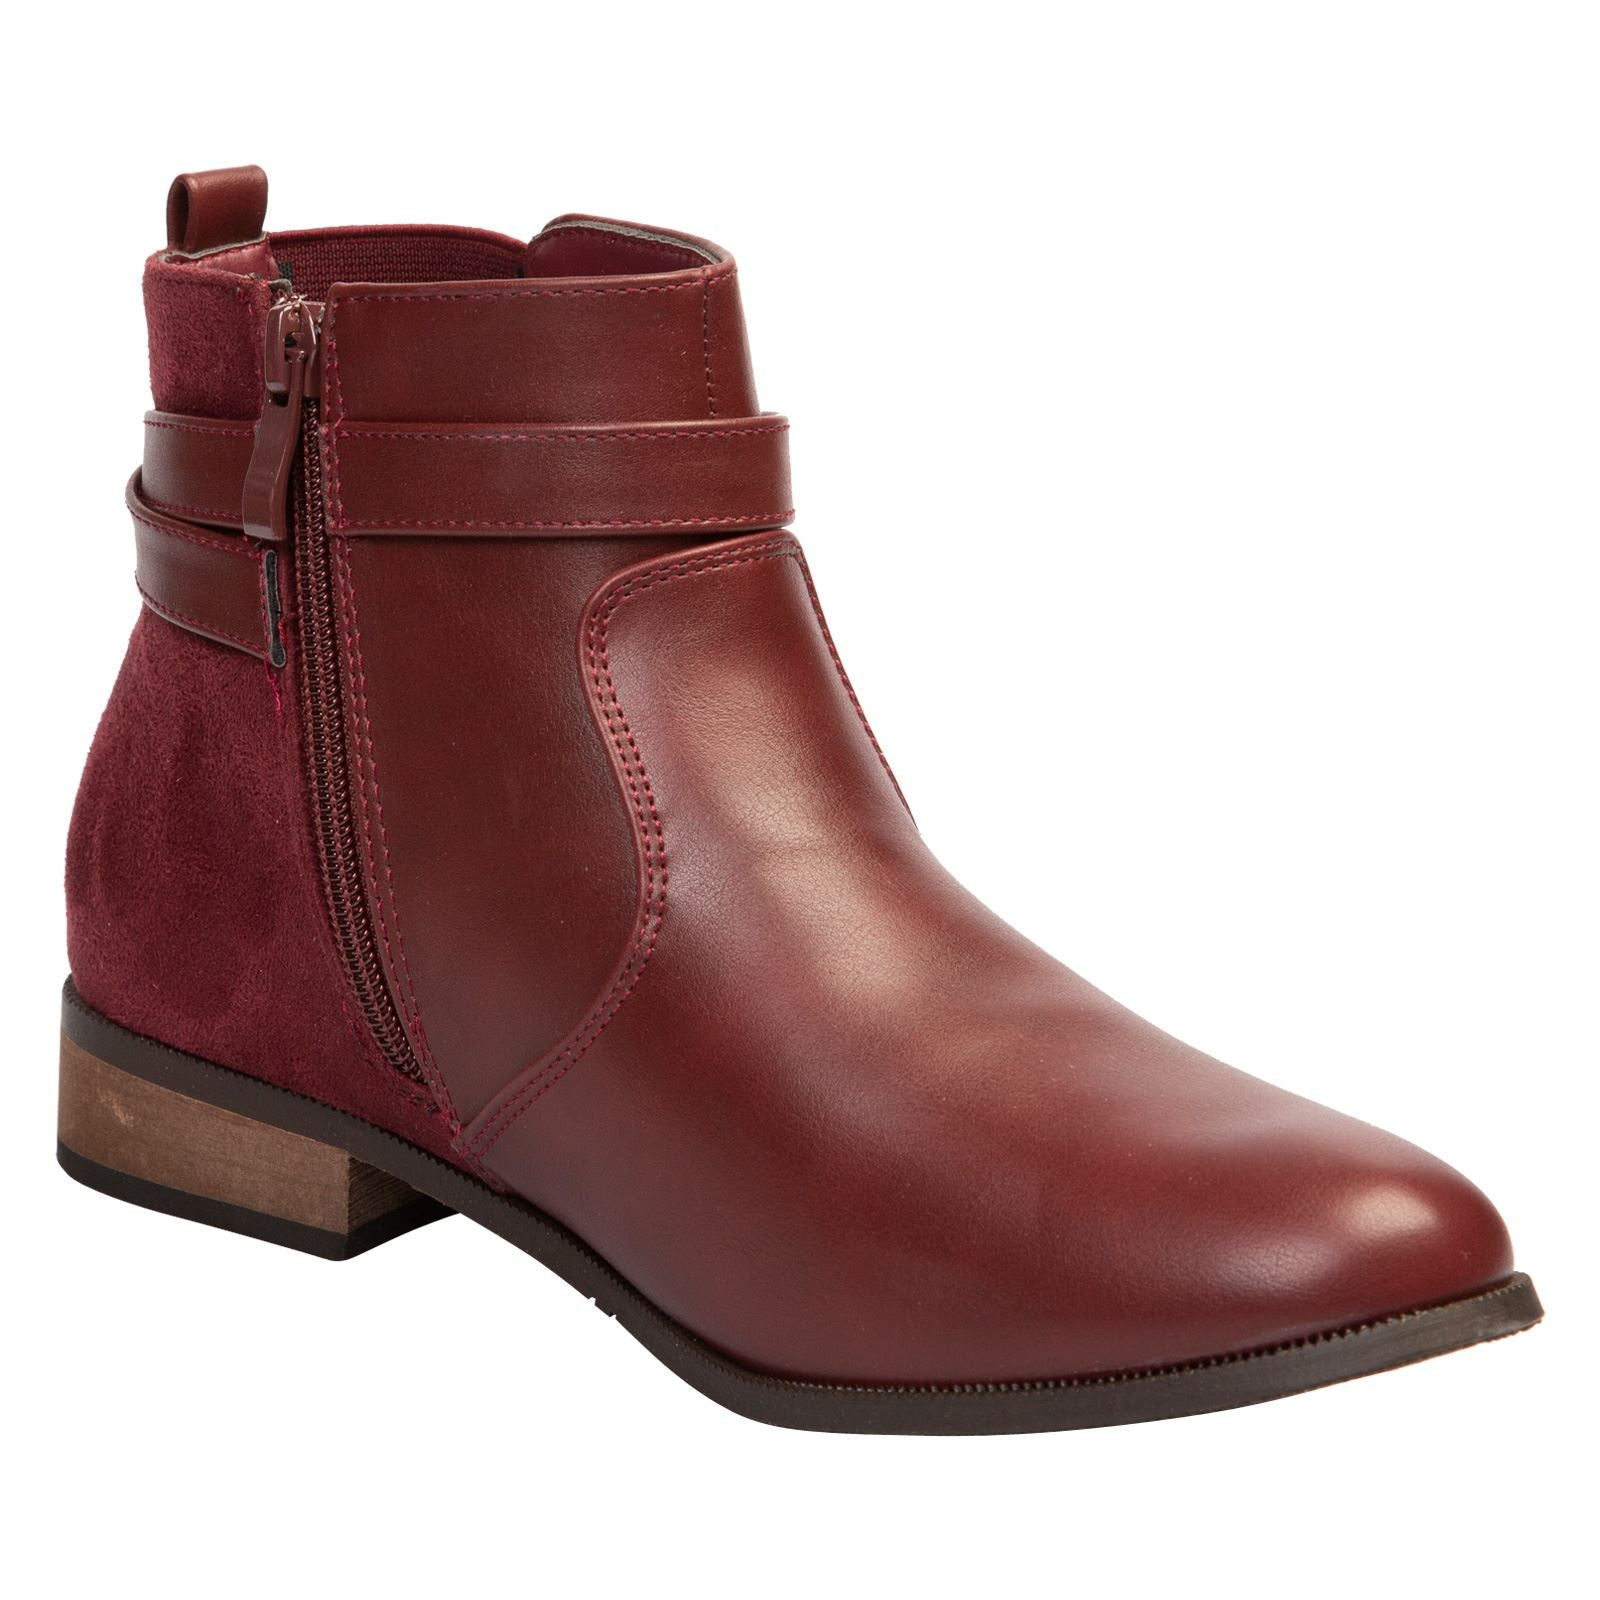 Jasmine Two-Tone Ankle Boots in Wine Red - Feet First Fashion